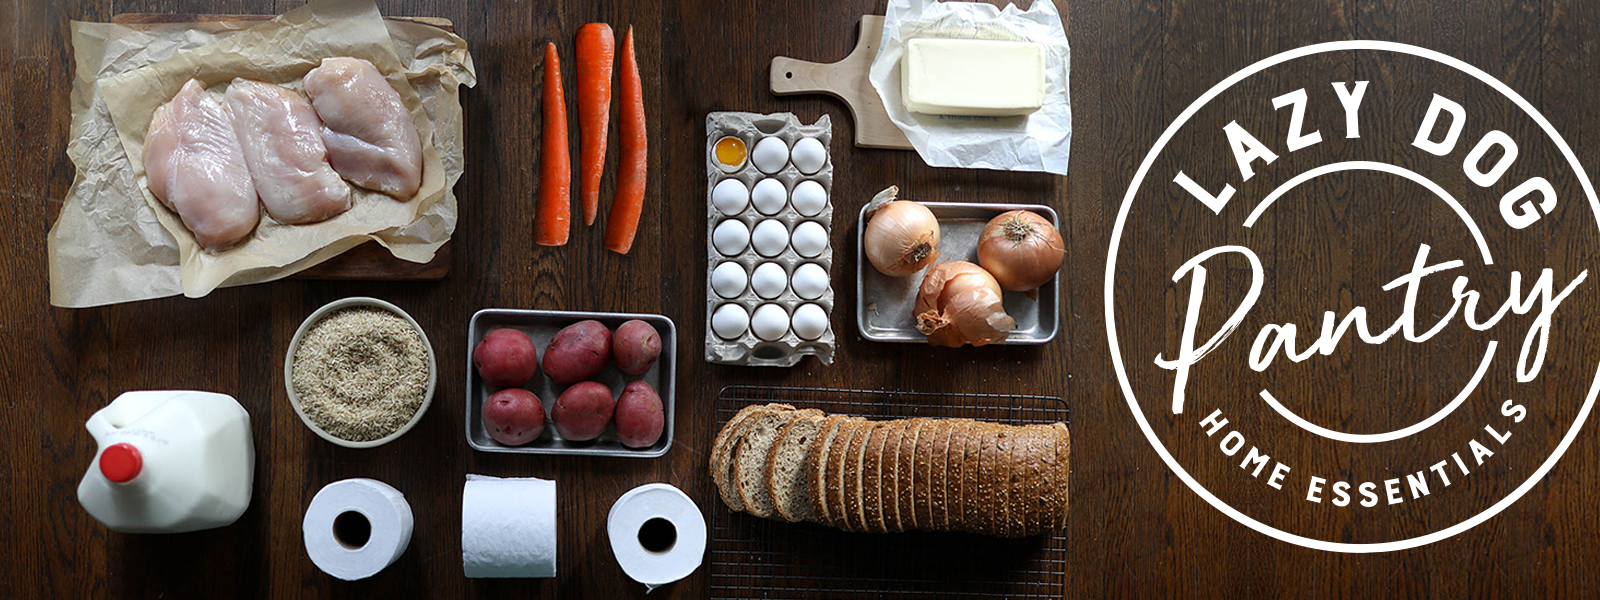 Lazy Dog Pantry Home Essentials:  Image of groceries: eggs, milk, toilet paper, chicken breast, carrots, butter, onions, potatoes, bread, rice